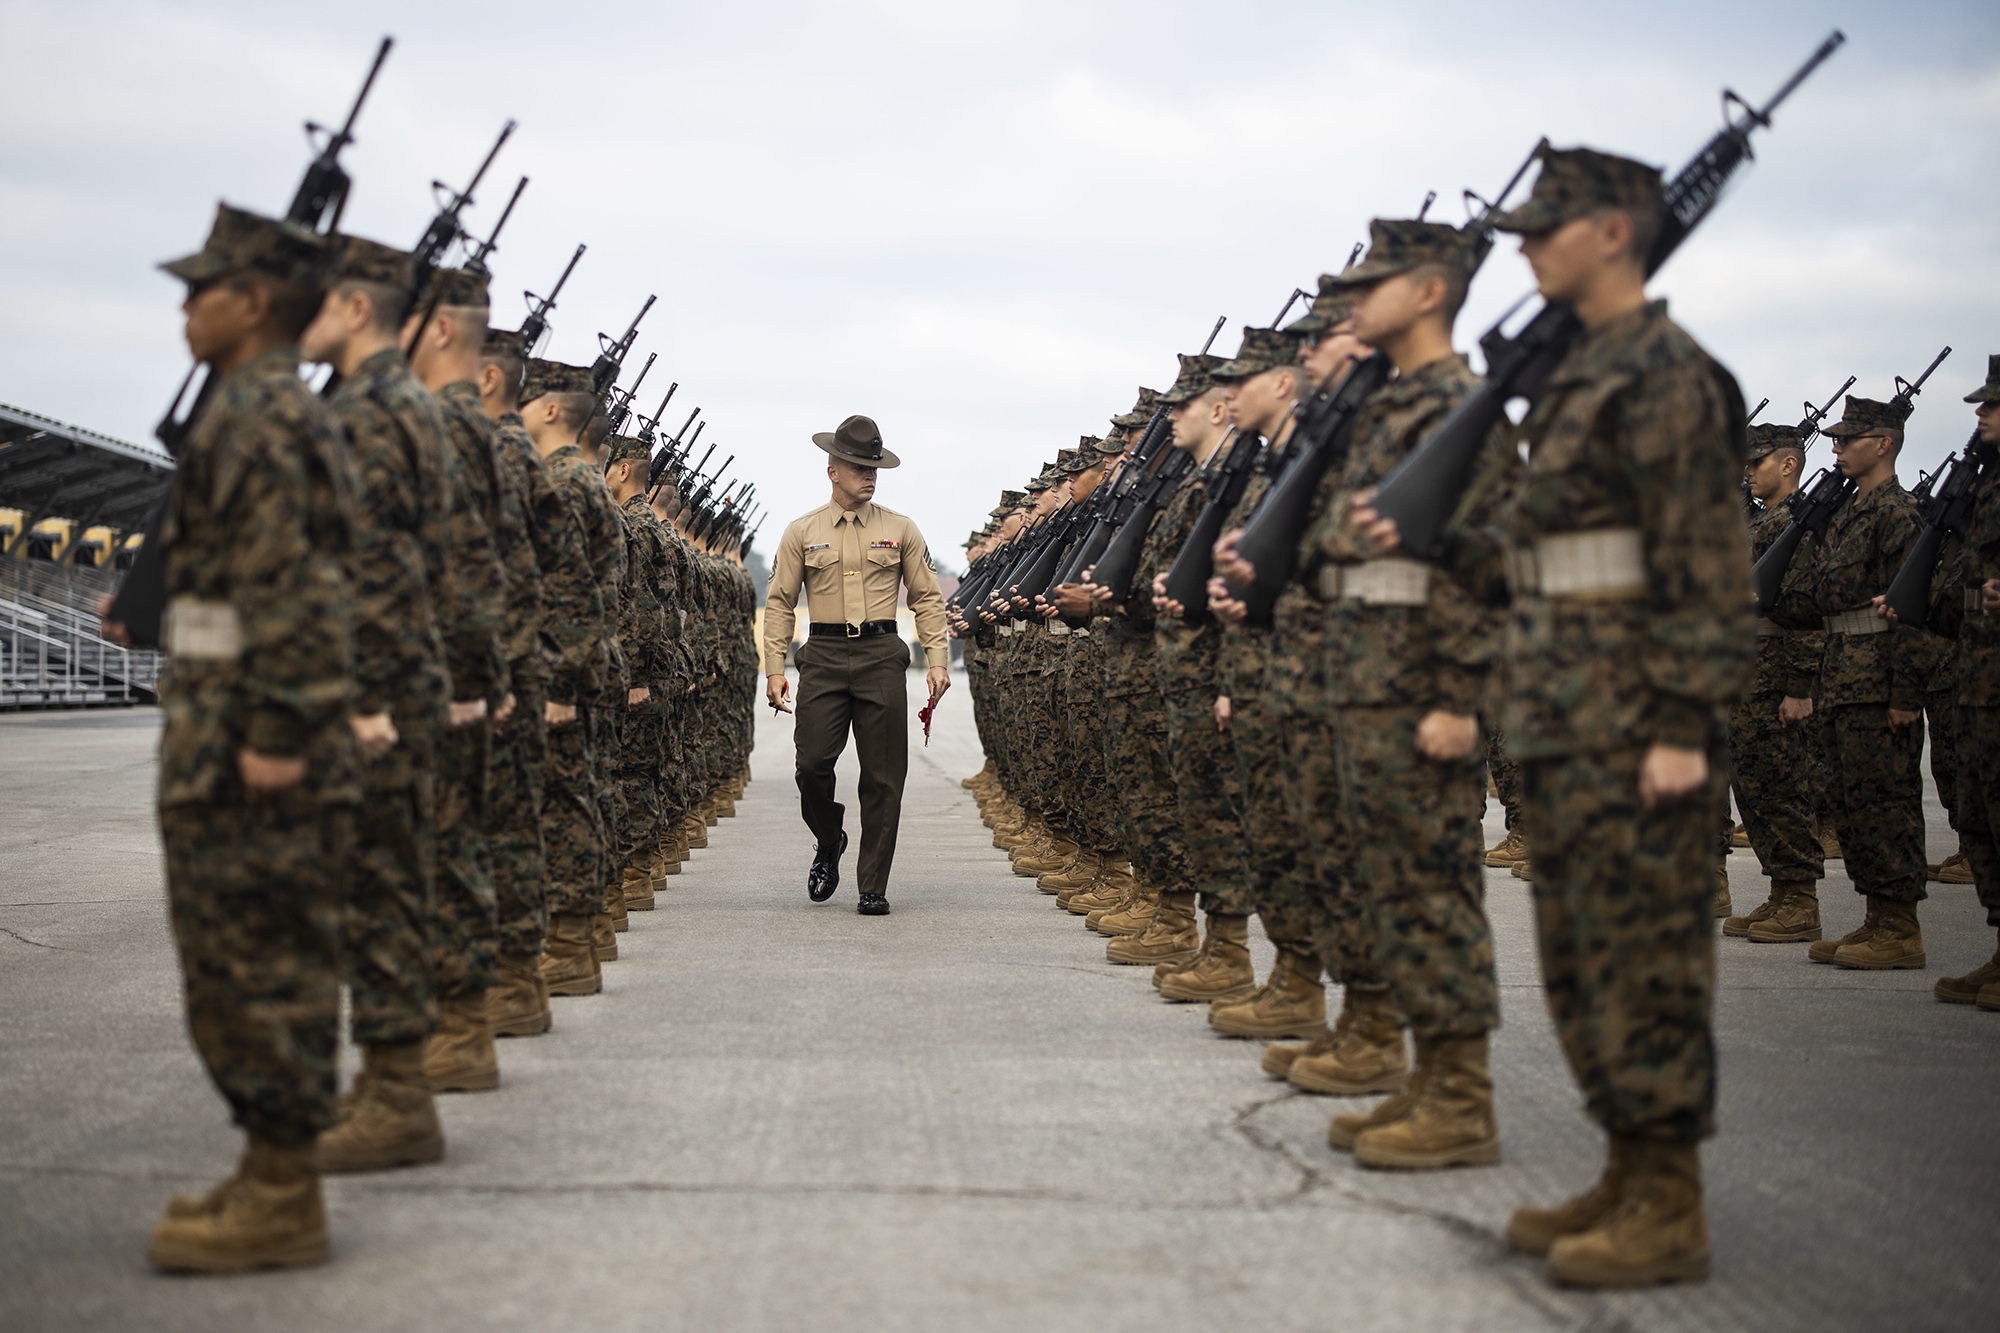 Staff Sgt. Andrew Snyder evaluates recruits with Charlie Company, 1st Recruit Training Battalion during their final drill evaluation at Marine Corps Recruit Depot, San Diego, Dec. 14, 2019. (Zachary T. Beatty/Marine Corps)